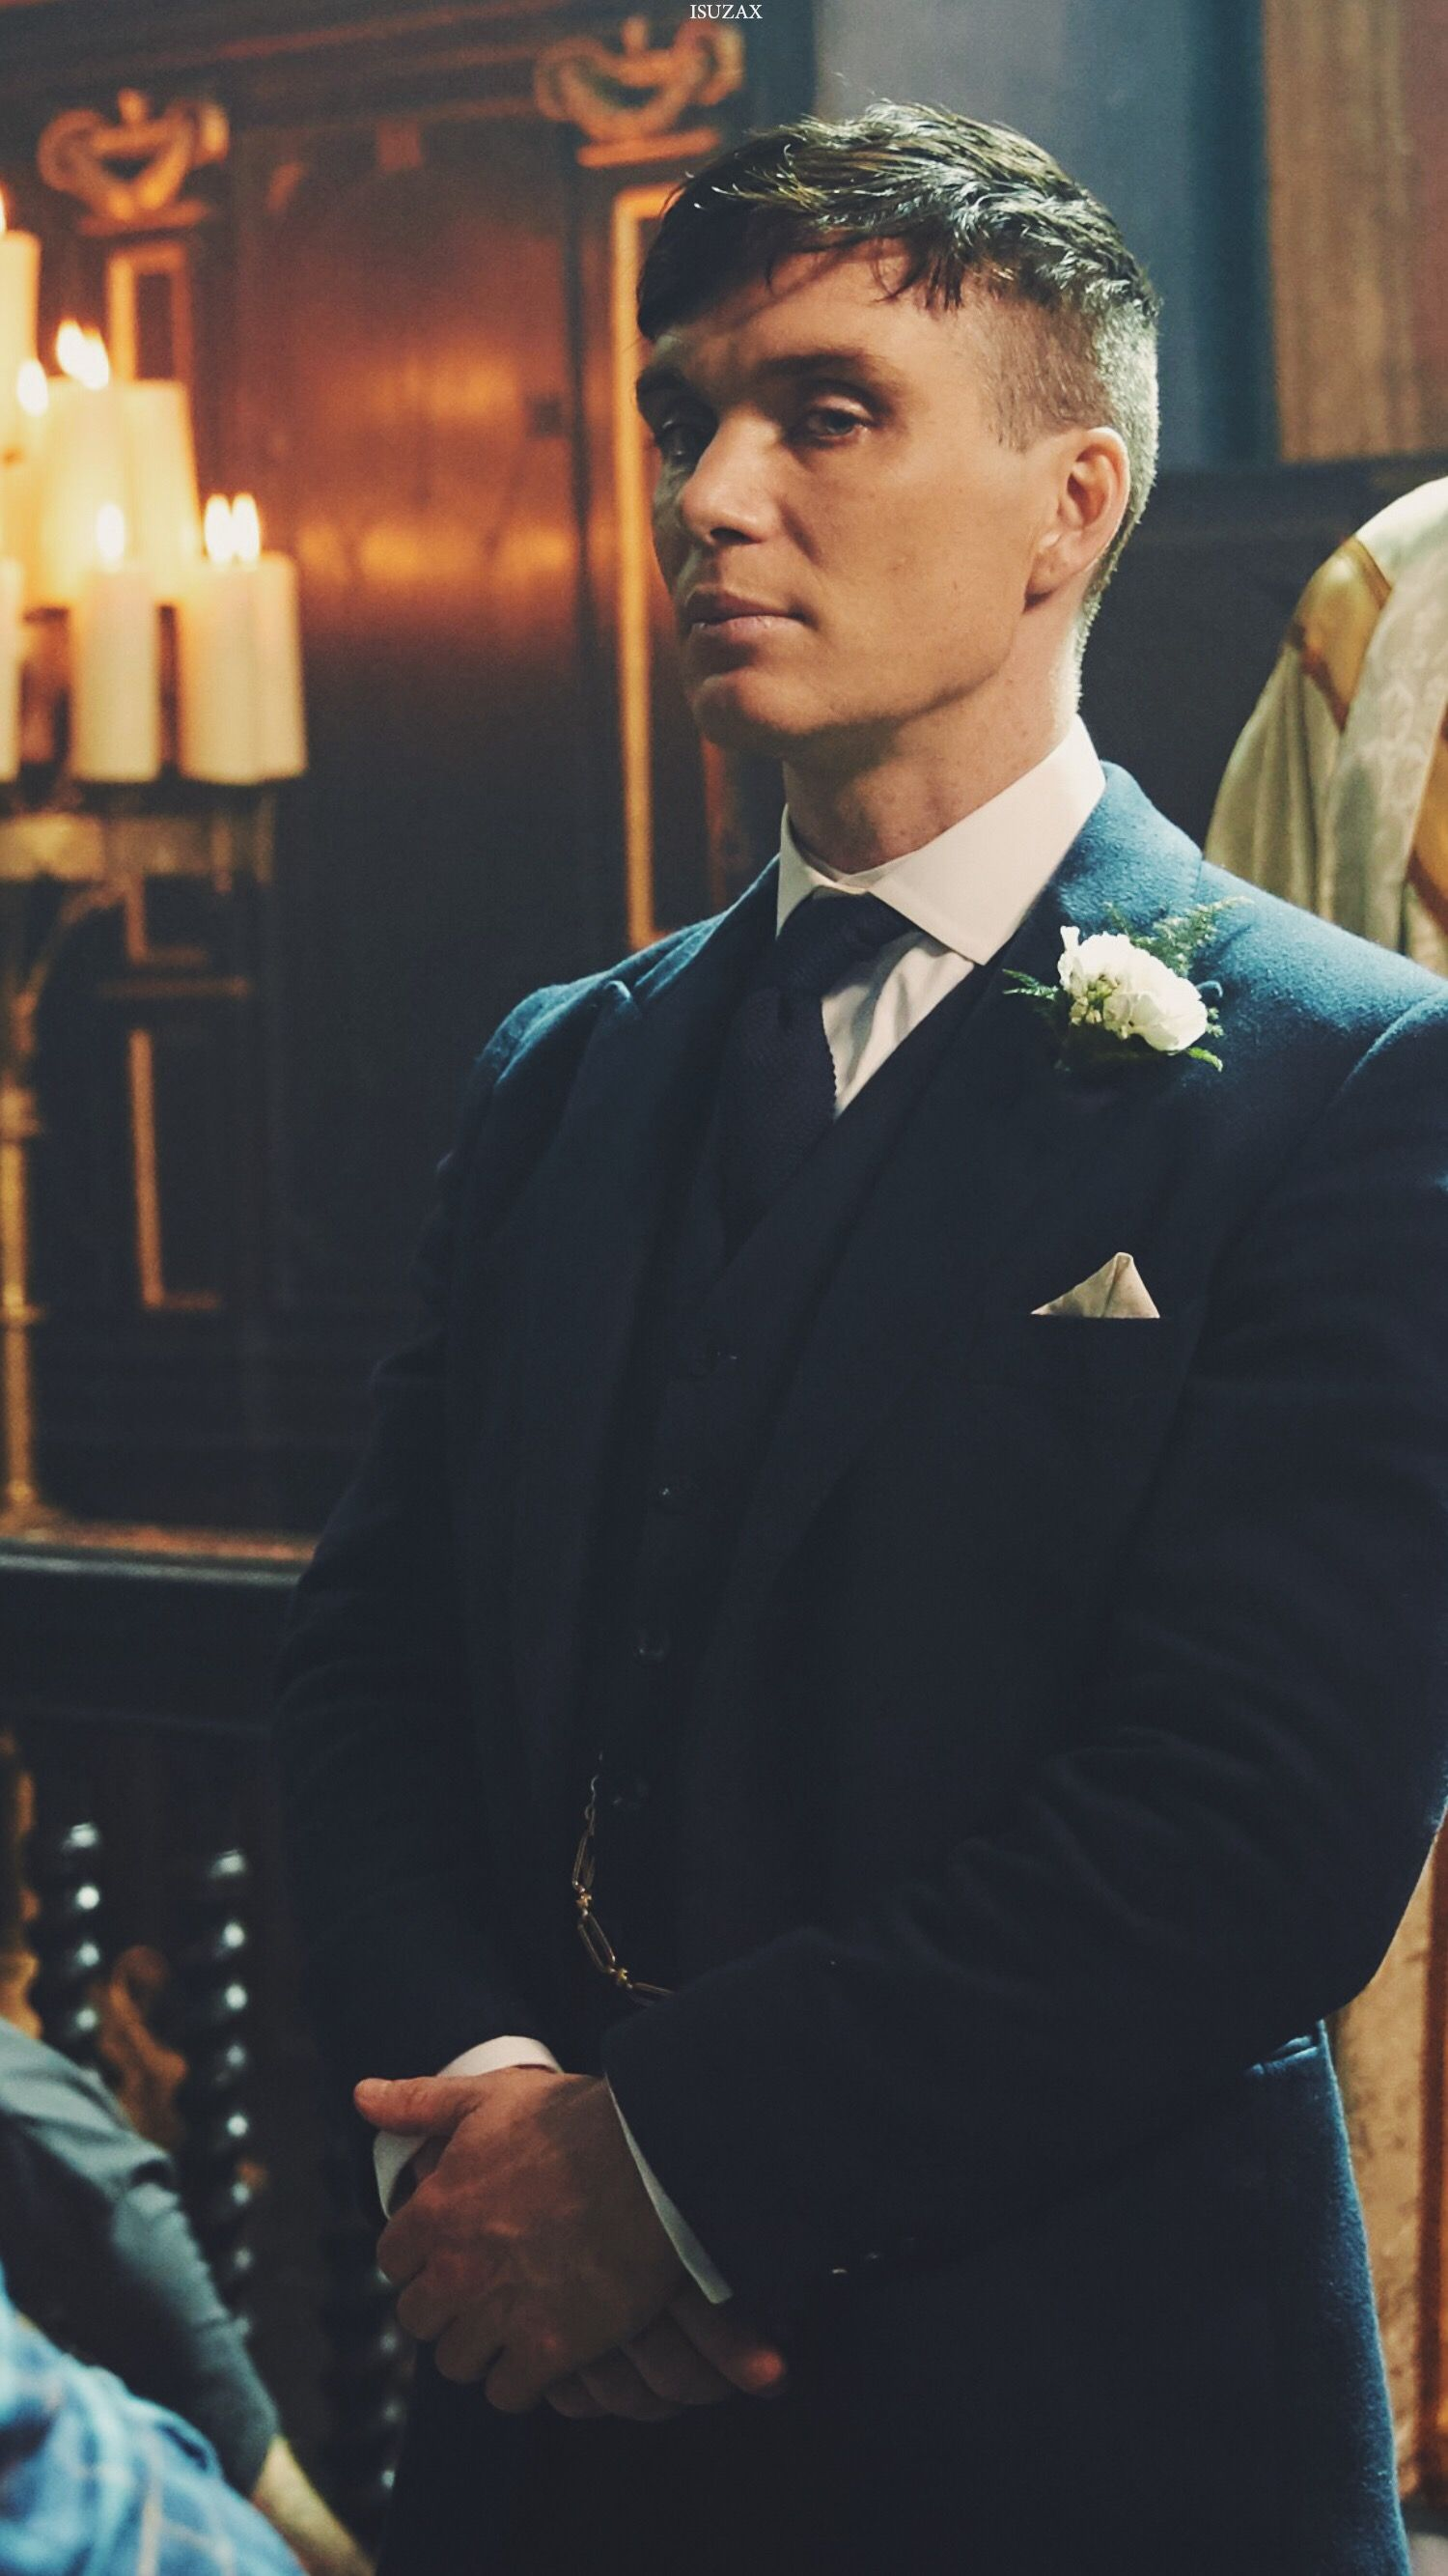 Pin By Rayan On Peaky Blinders Pinterest Peaky Blinders Cillian